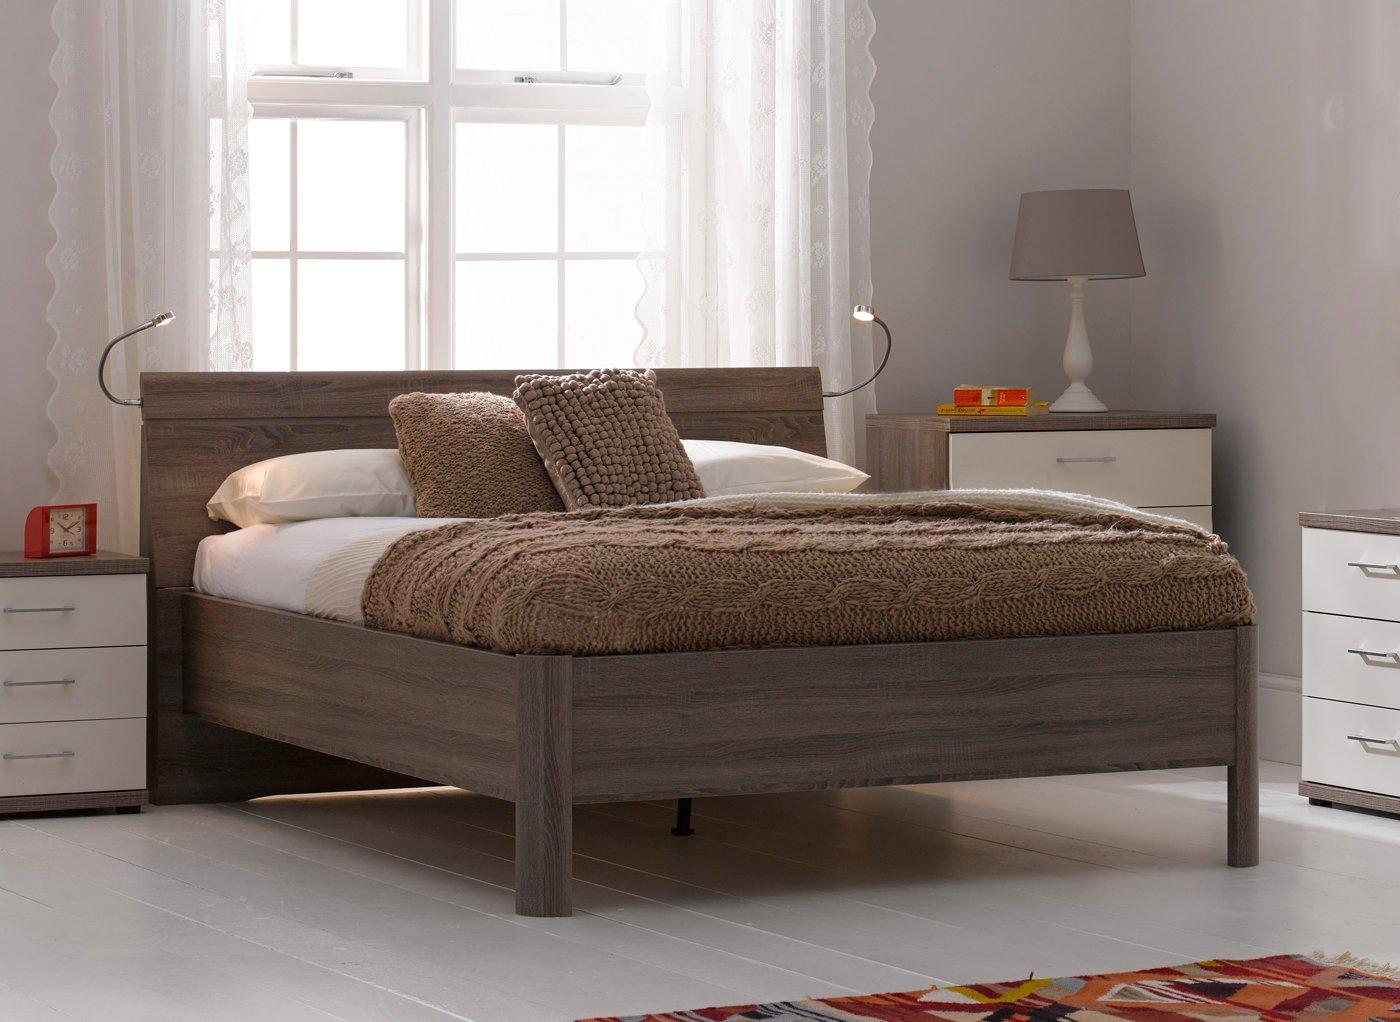 Melbourne Oak Wooden Bed Frame 5'0 King